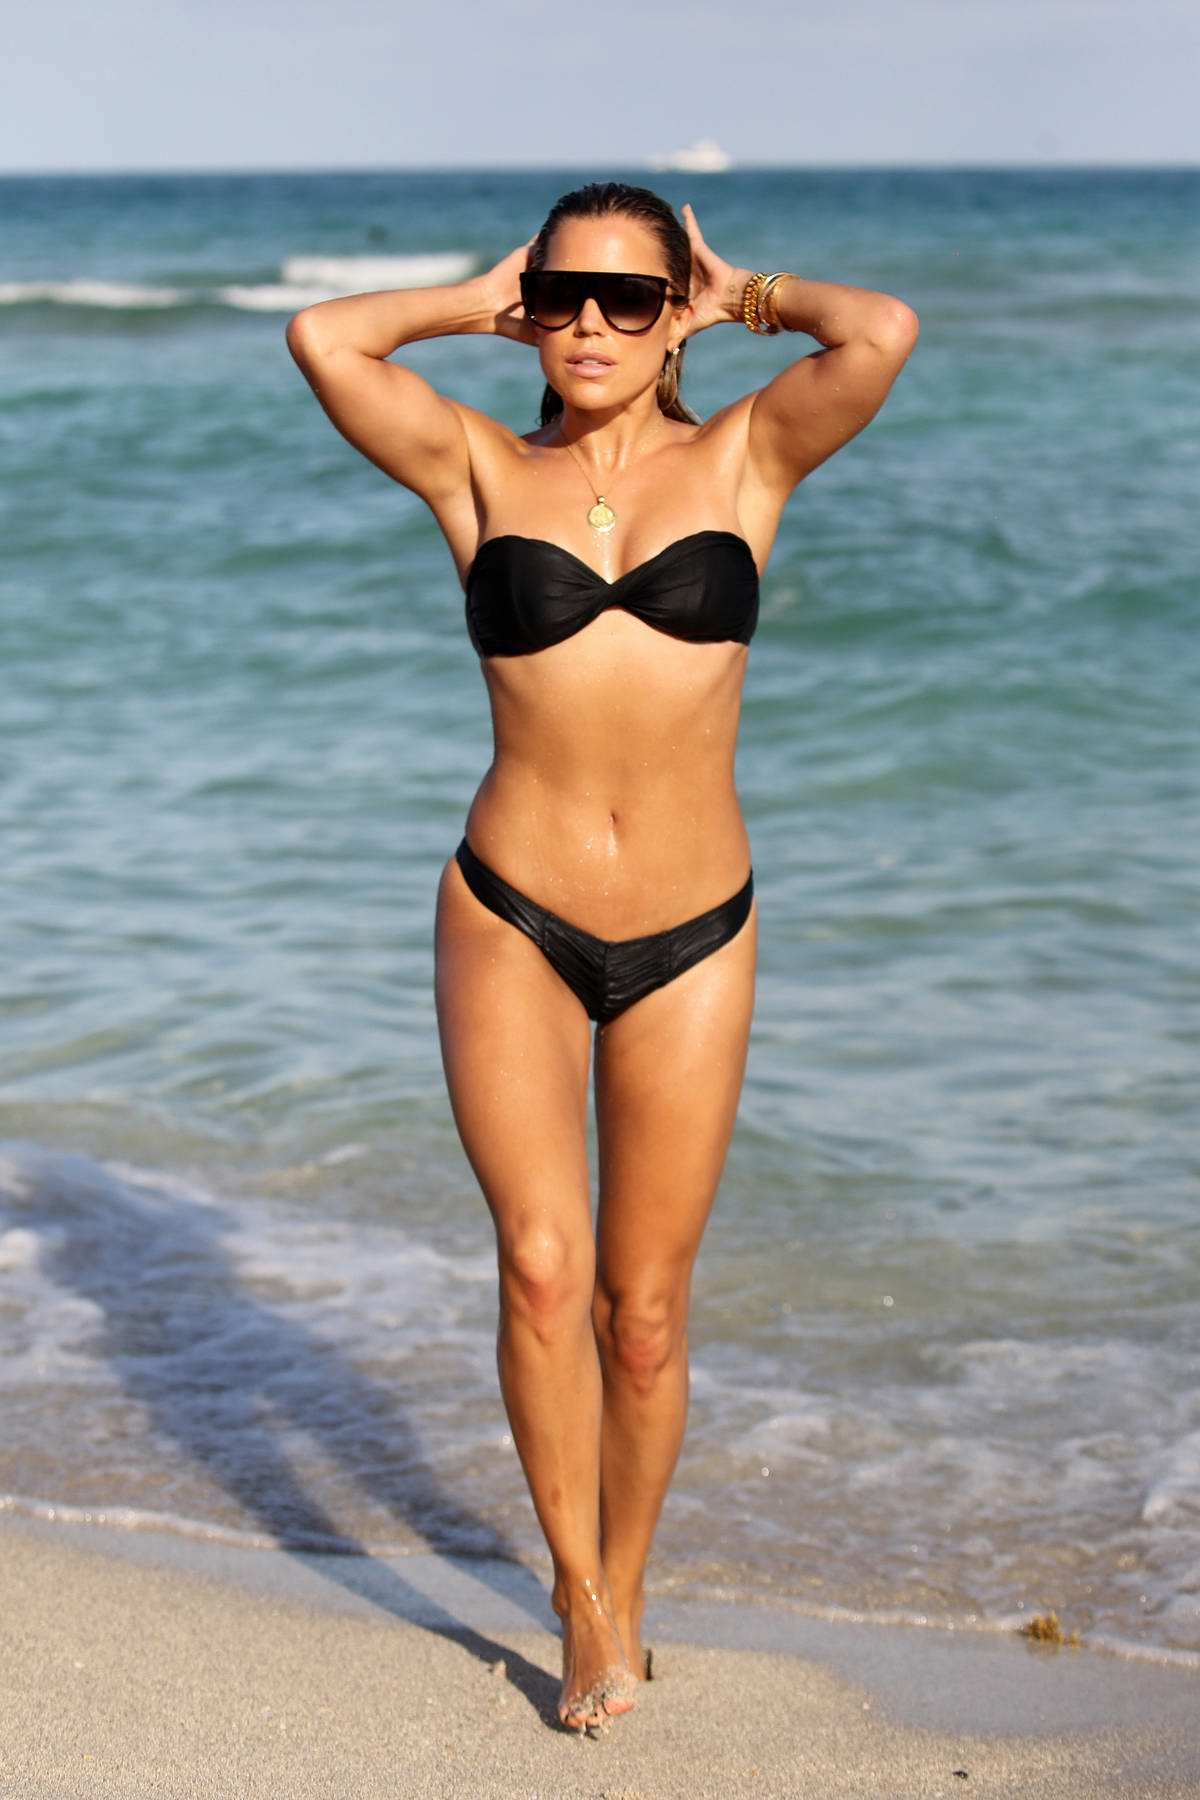 Sylvie Meis wears a black bikini while enjoying a beach day with fiance Niclas Castello in Miami, Florida